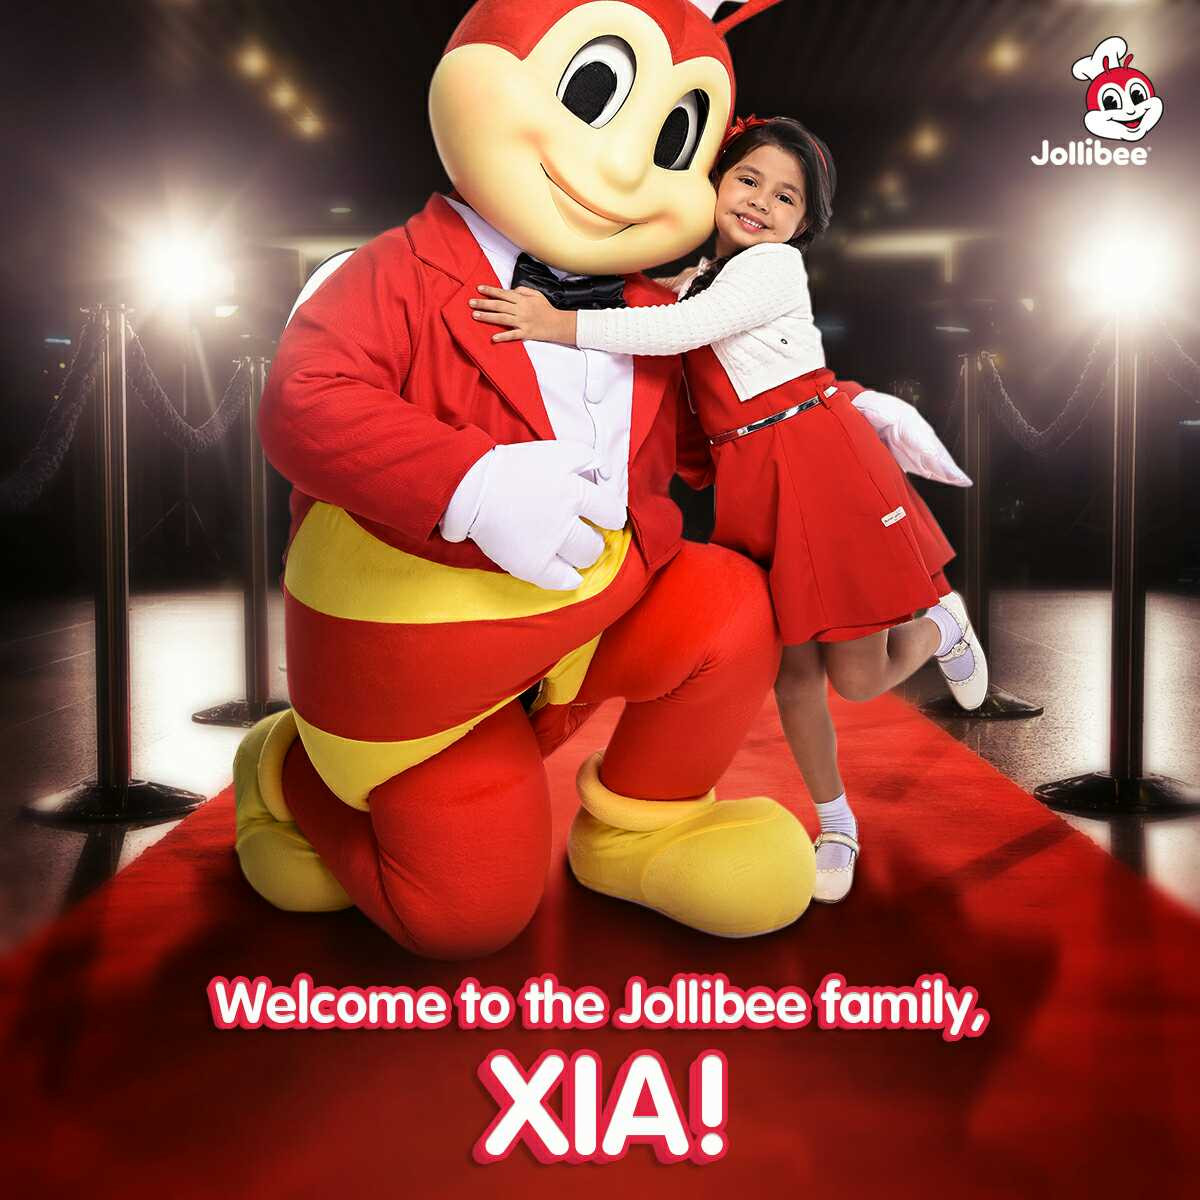 globalization of jollibee Good video like/fav & share jollibee why tf is everyone hyped about jollibee right now seriously, jollibee has been around for awhile now.